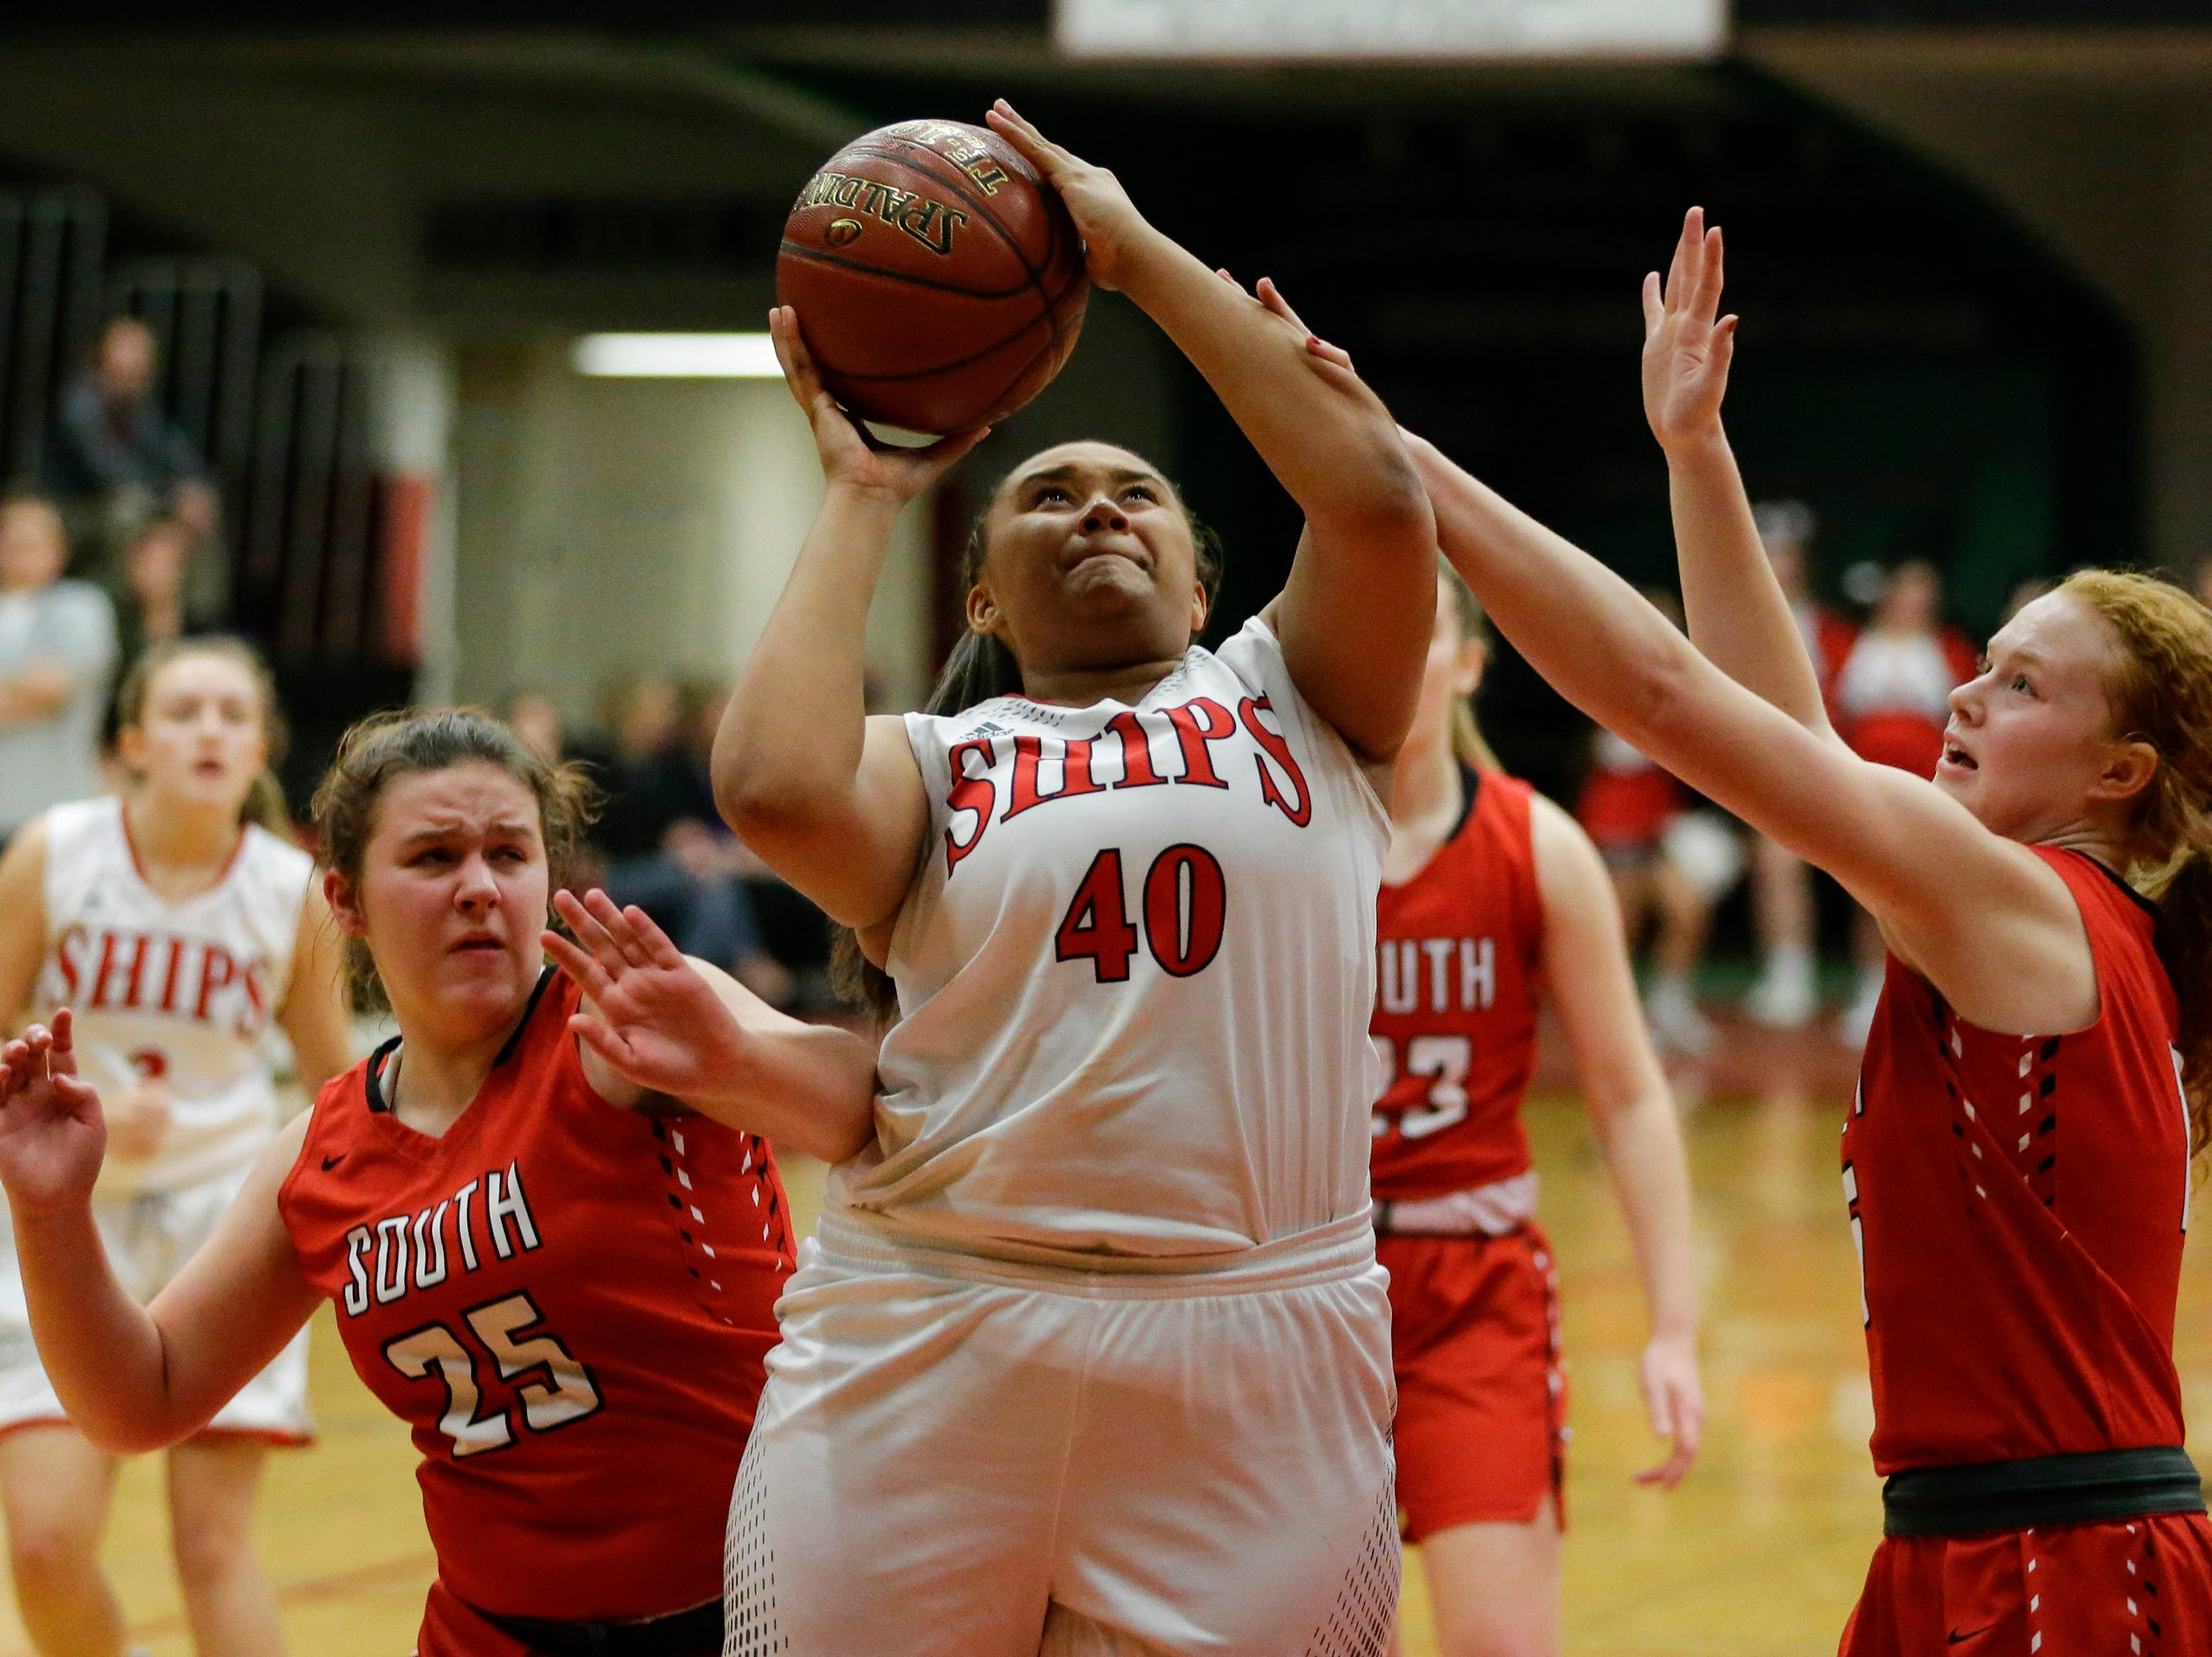 Manitowoc Lincoln's Massendra Musial is fouled as she shoots against Sheboygan South during an FRCC matchup at Manitowoc Lincoln High School Friday, January 4, 2019, in Manitowoc, Wis. Joshua Clark/USA TODAY NETWORK-Wisconsin